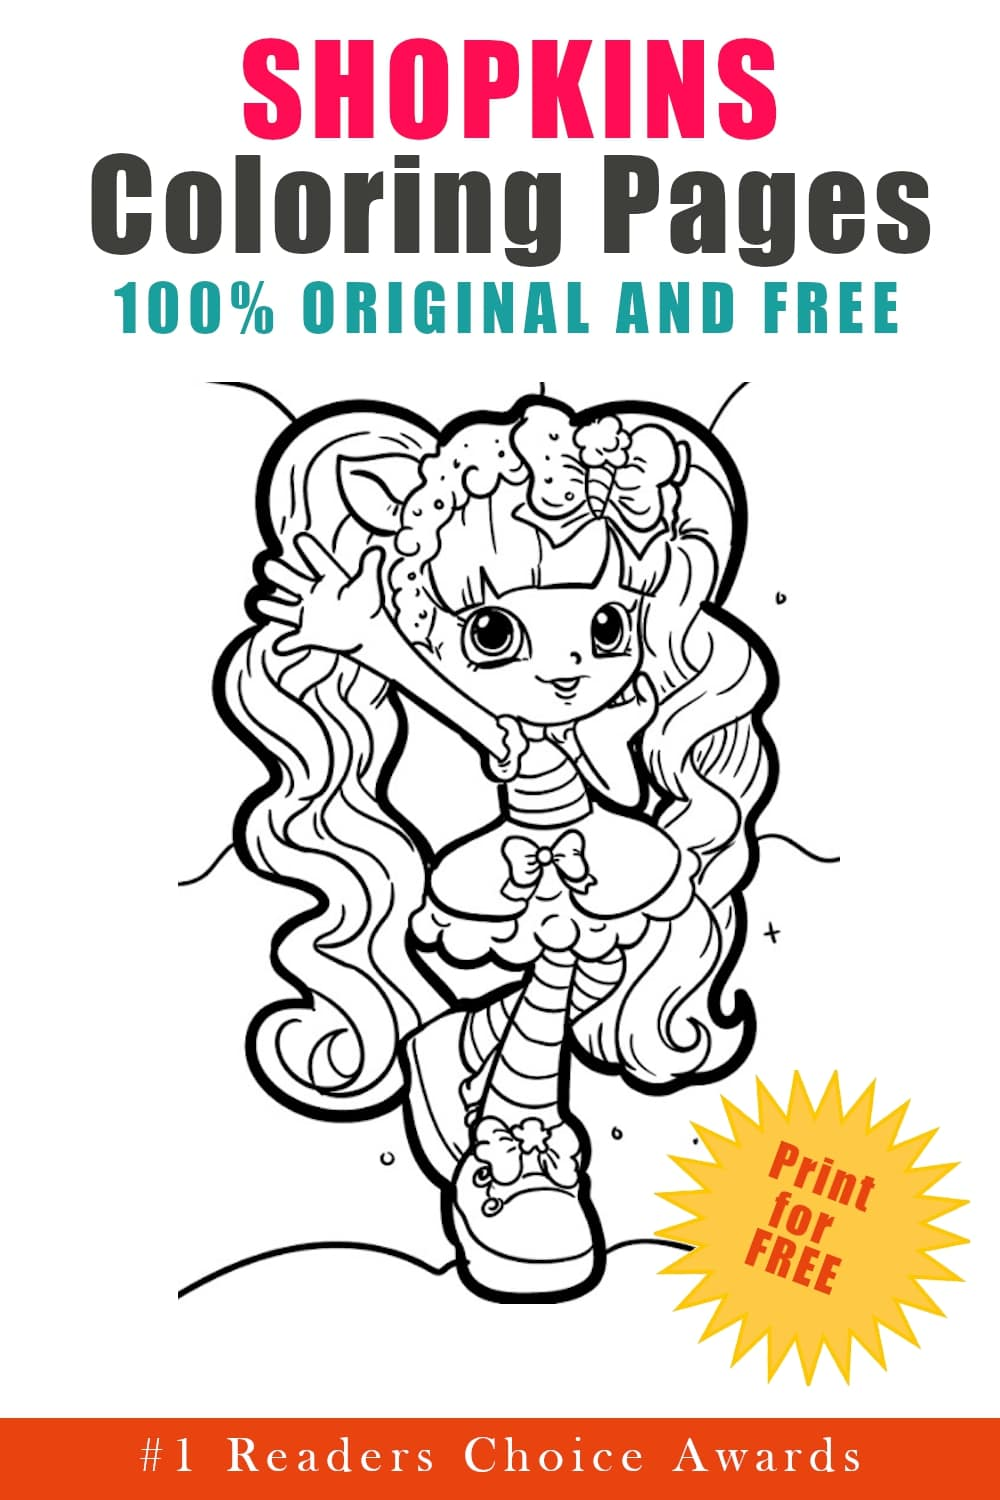 original and free shopkins coloring pages